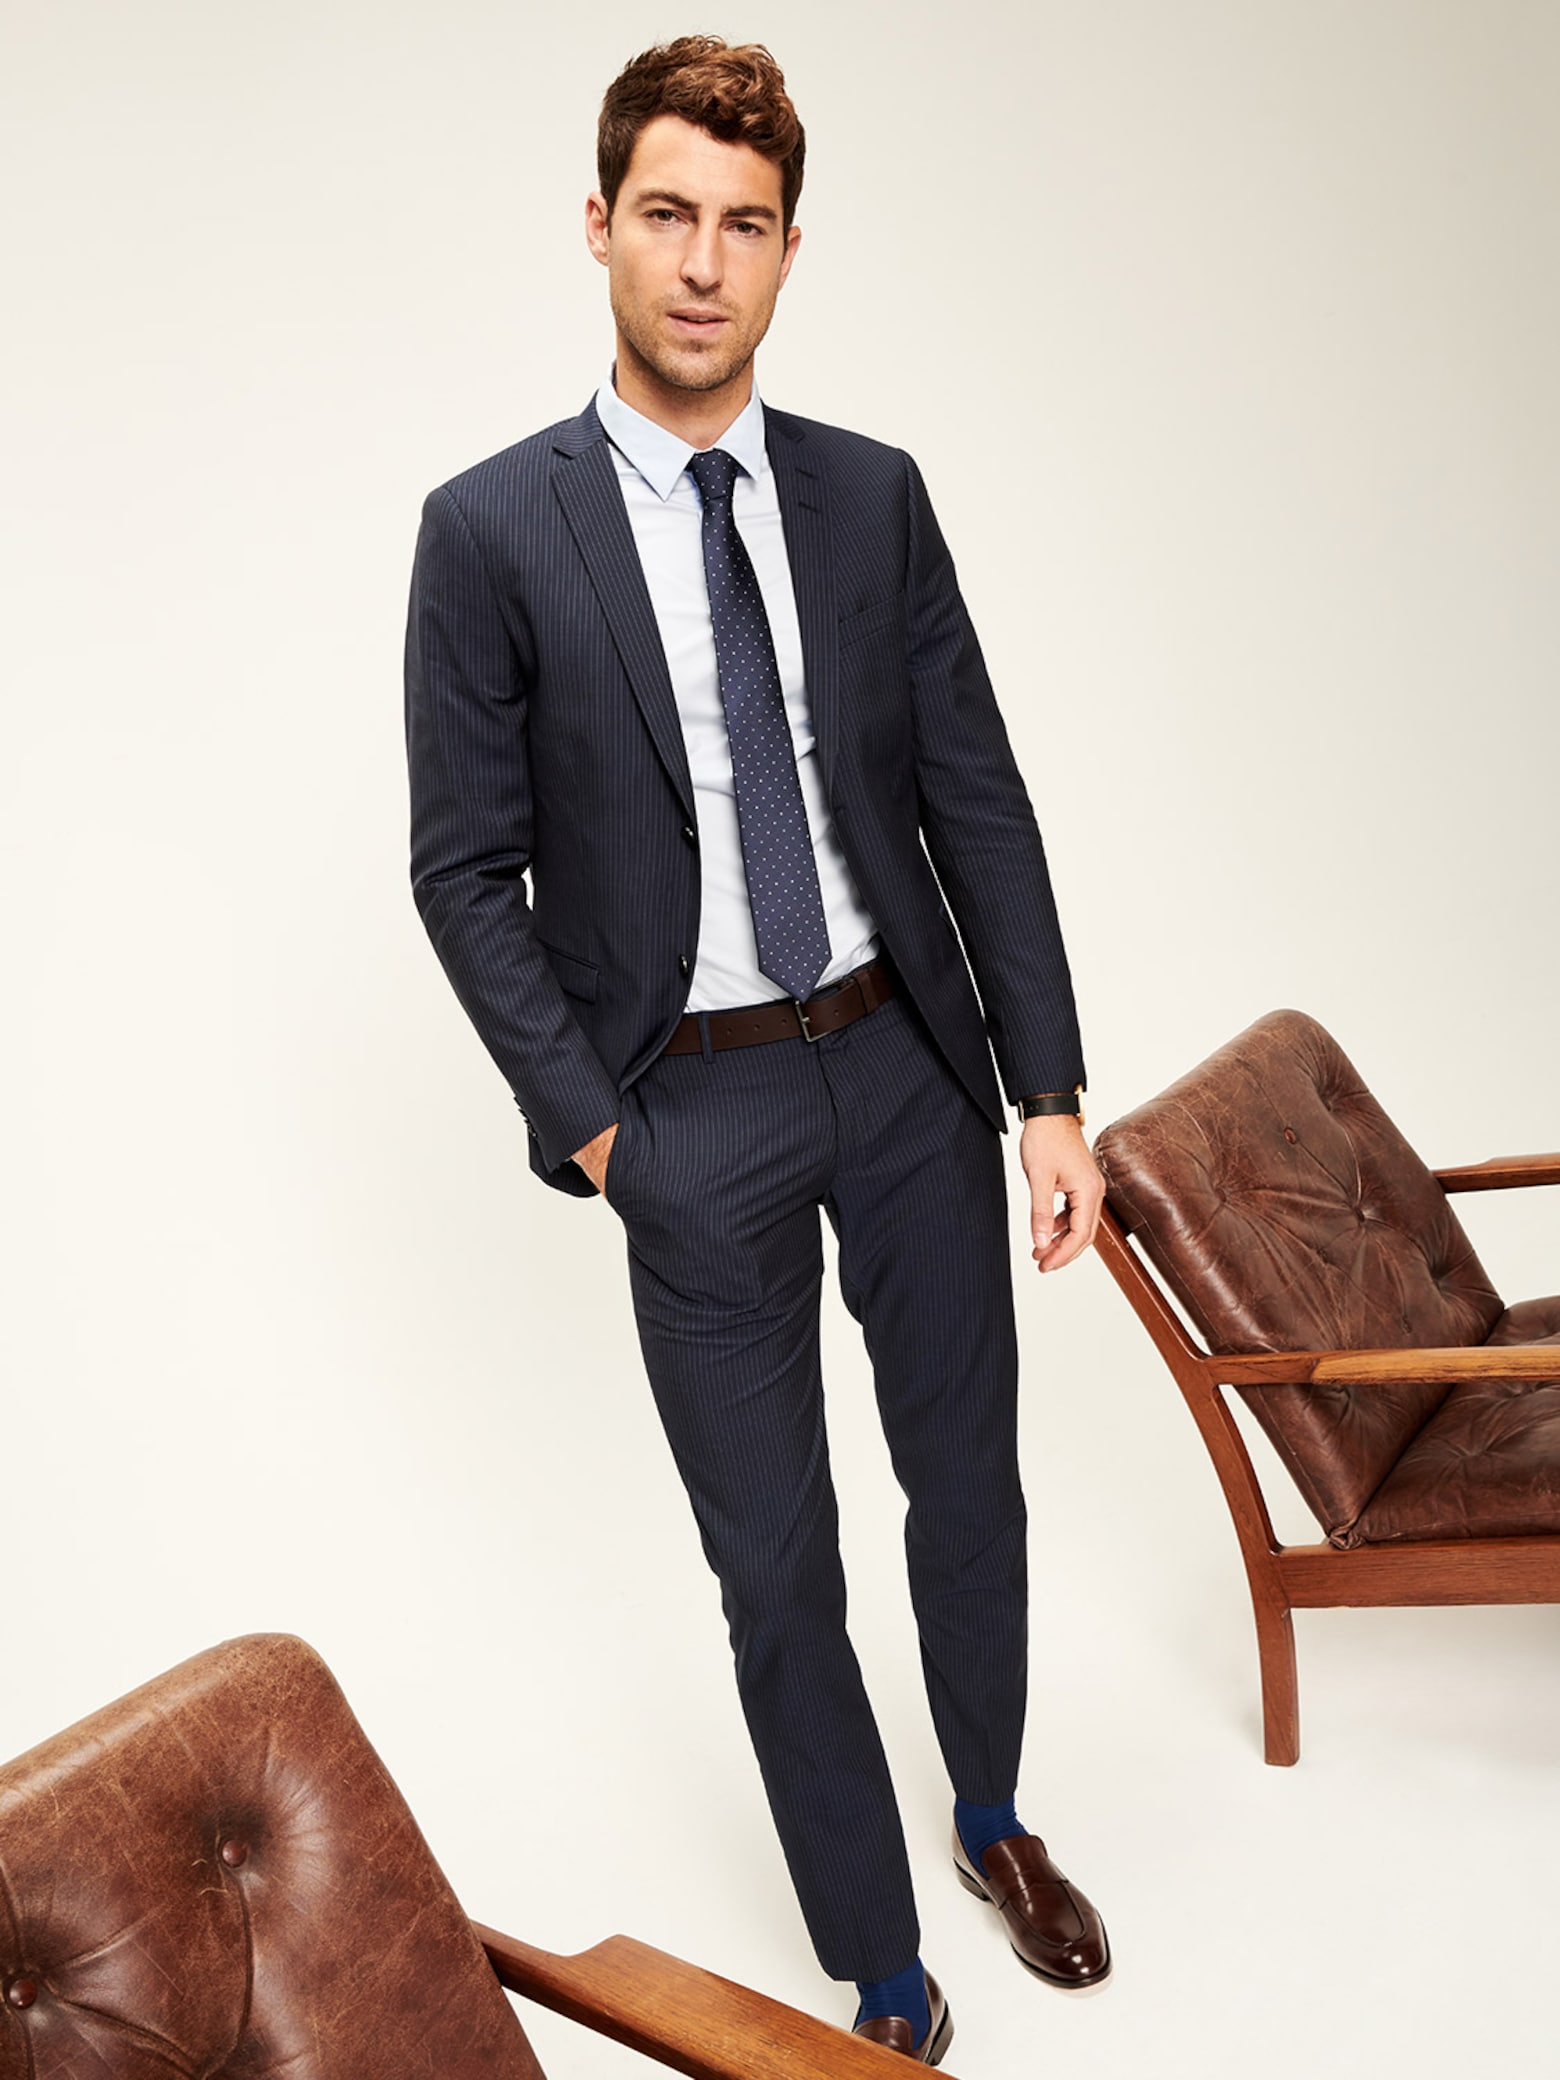 Dresscode Guide Business Formal